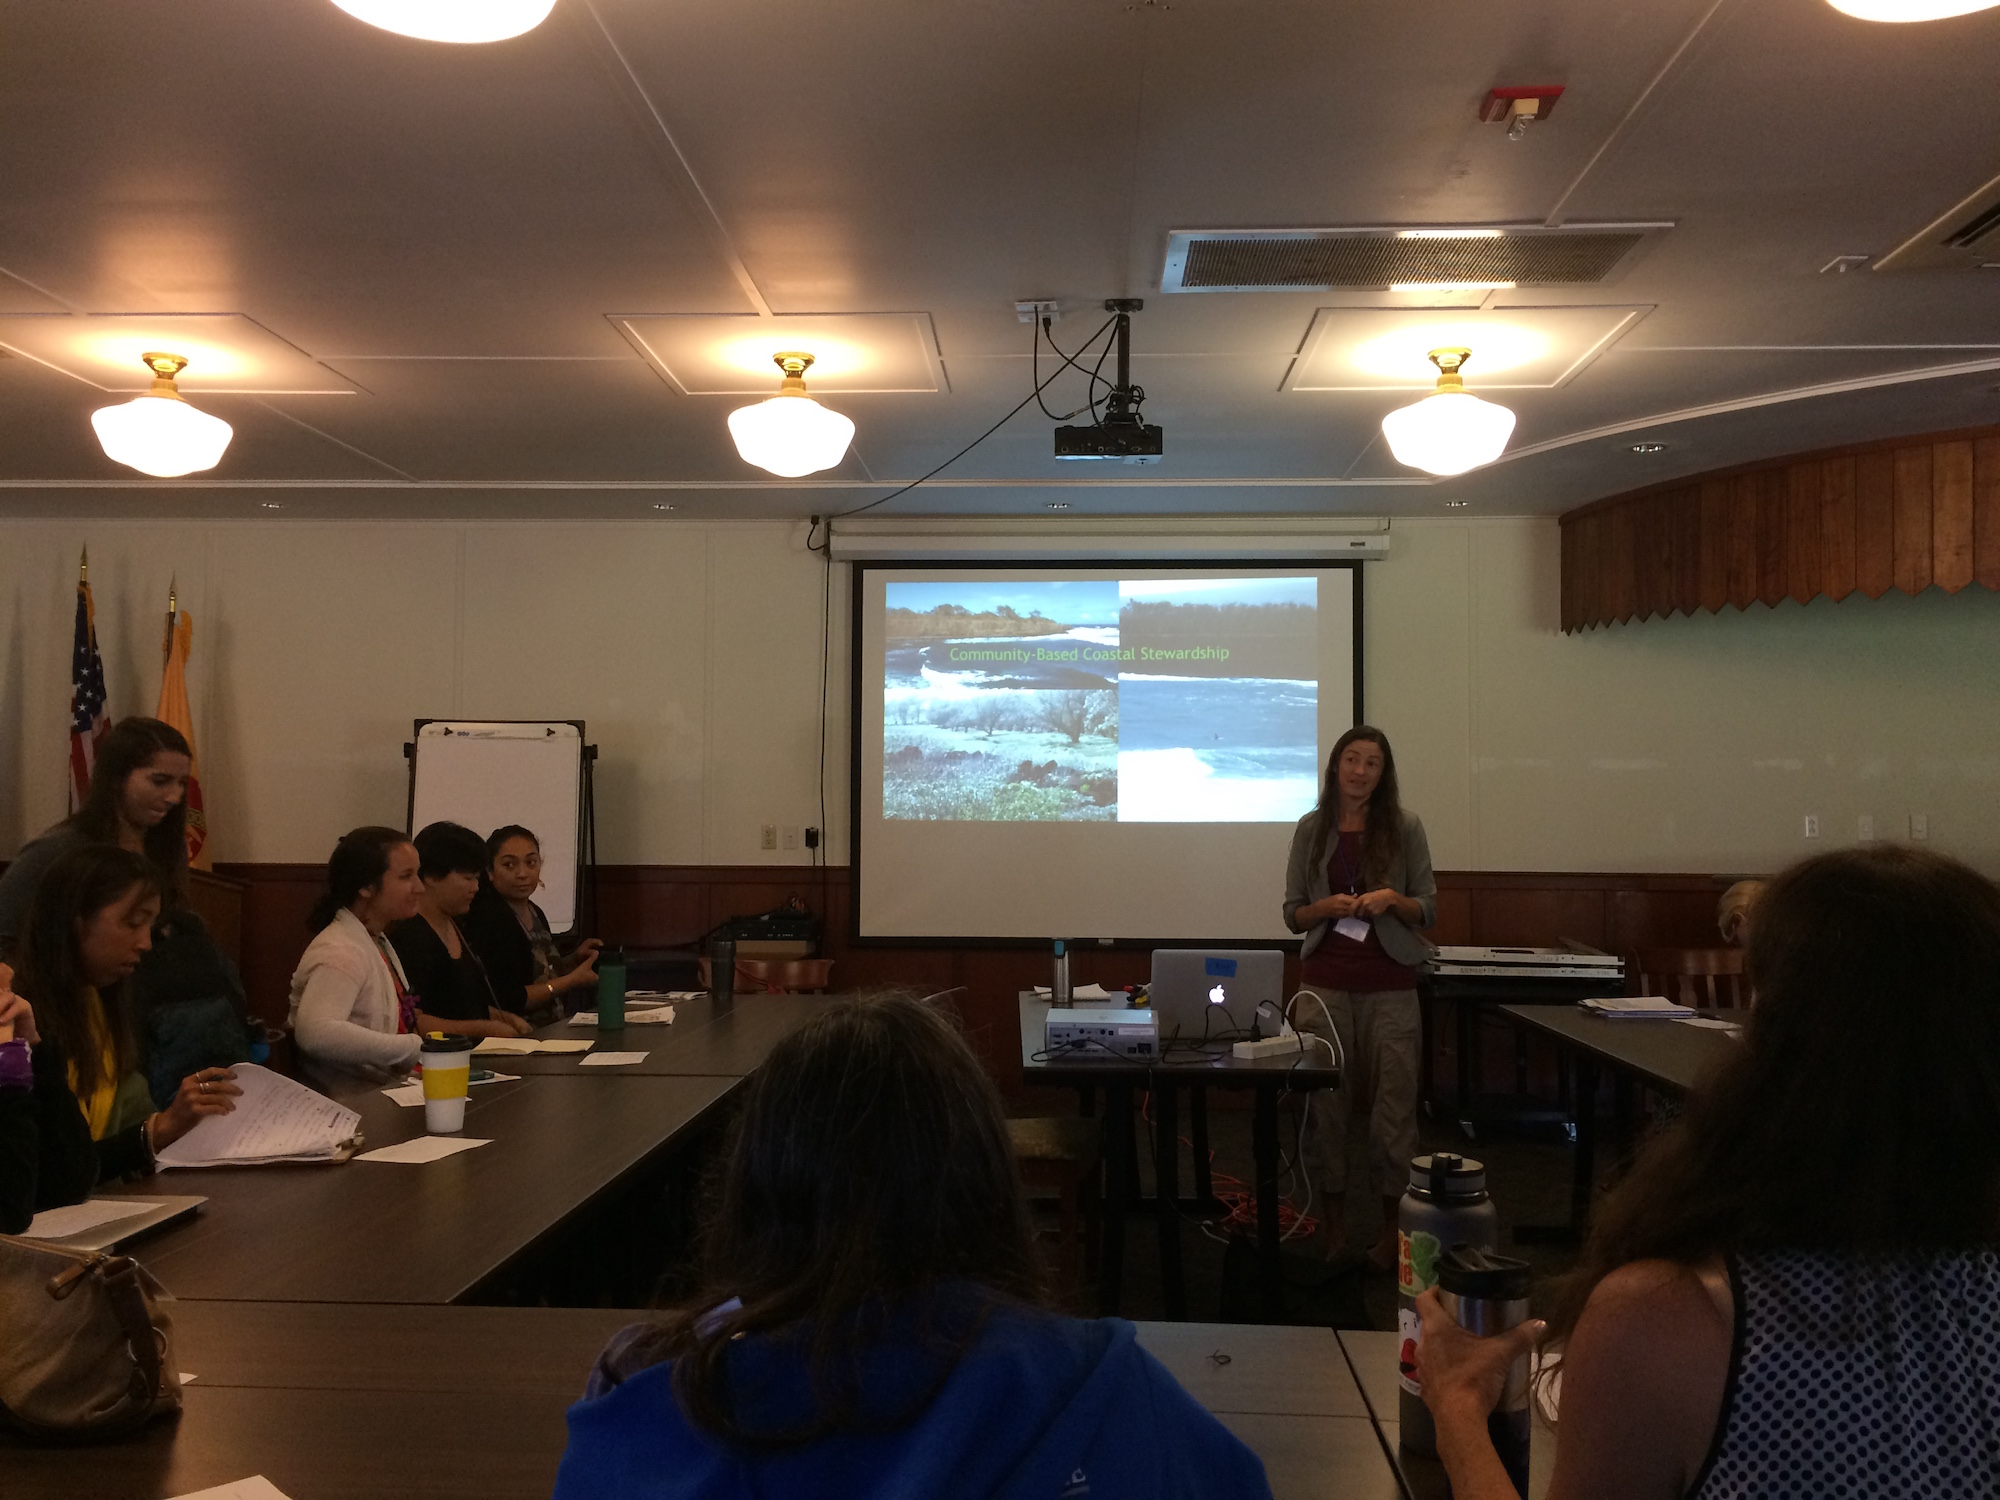 Elizabeth Pickett shares lessons learned from the youth stewardship program she runs called Ocean Warriors.